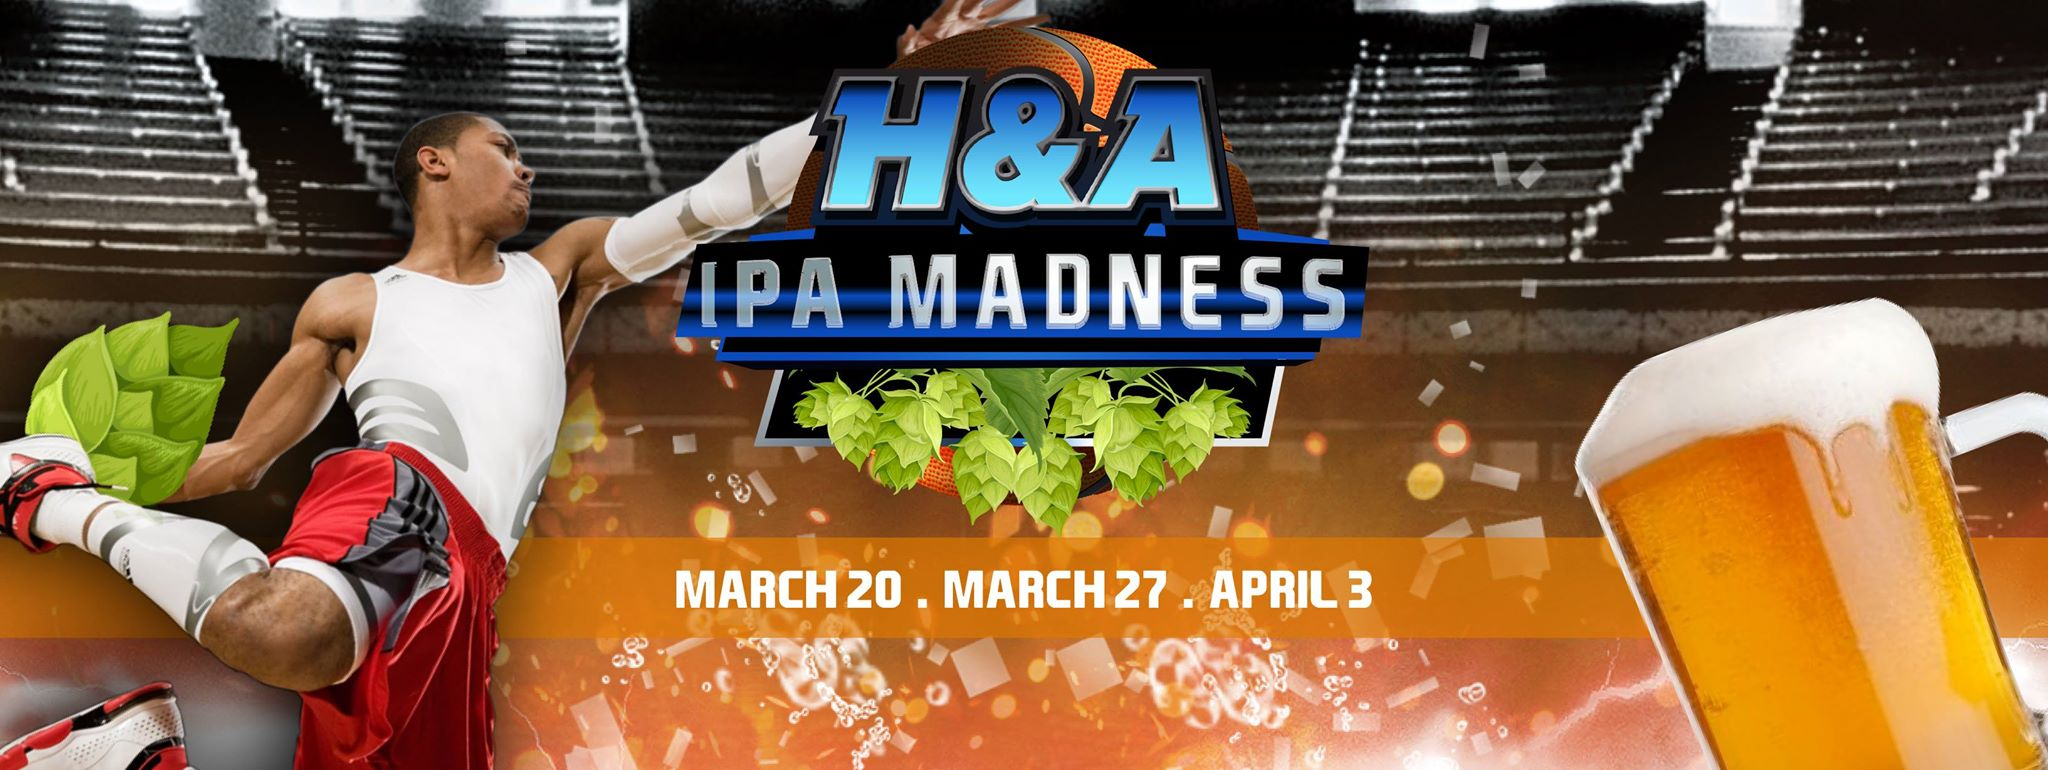 IPA Madness: Who has the best IPA in San Diego?